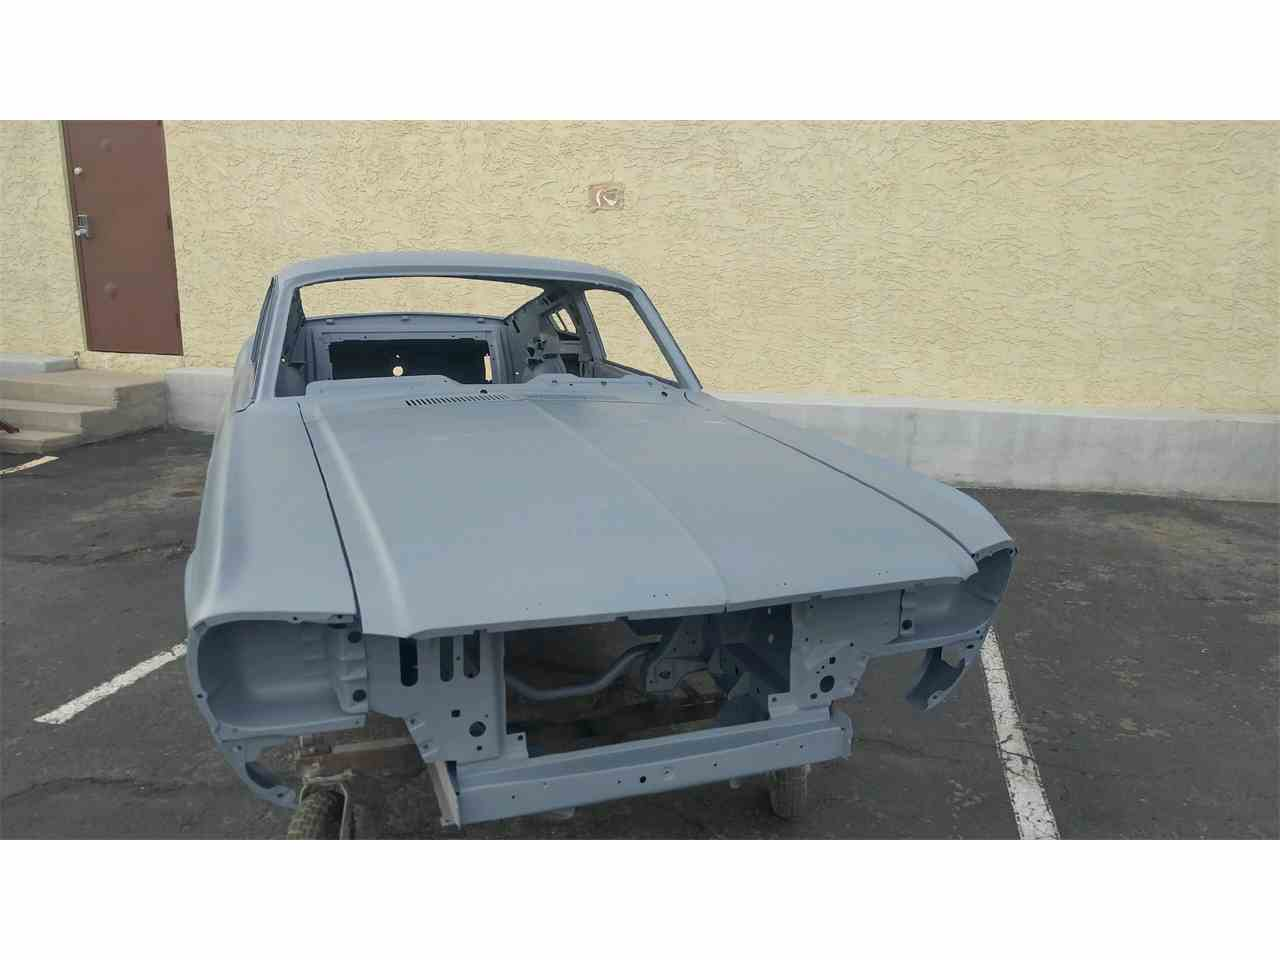 Large Picture of 1968 Mustang Restored Body Shells located in Arizona - $16,700.00 Offered by Desert Classic Mustangs - JP9Q